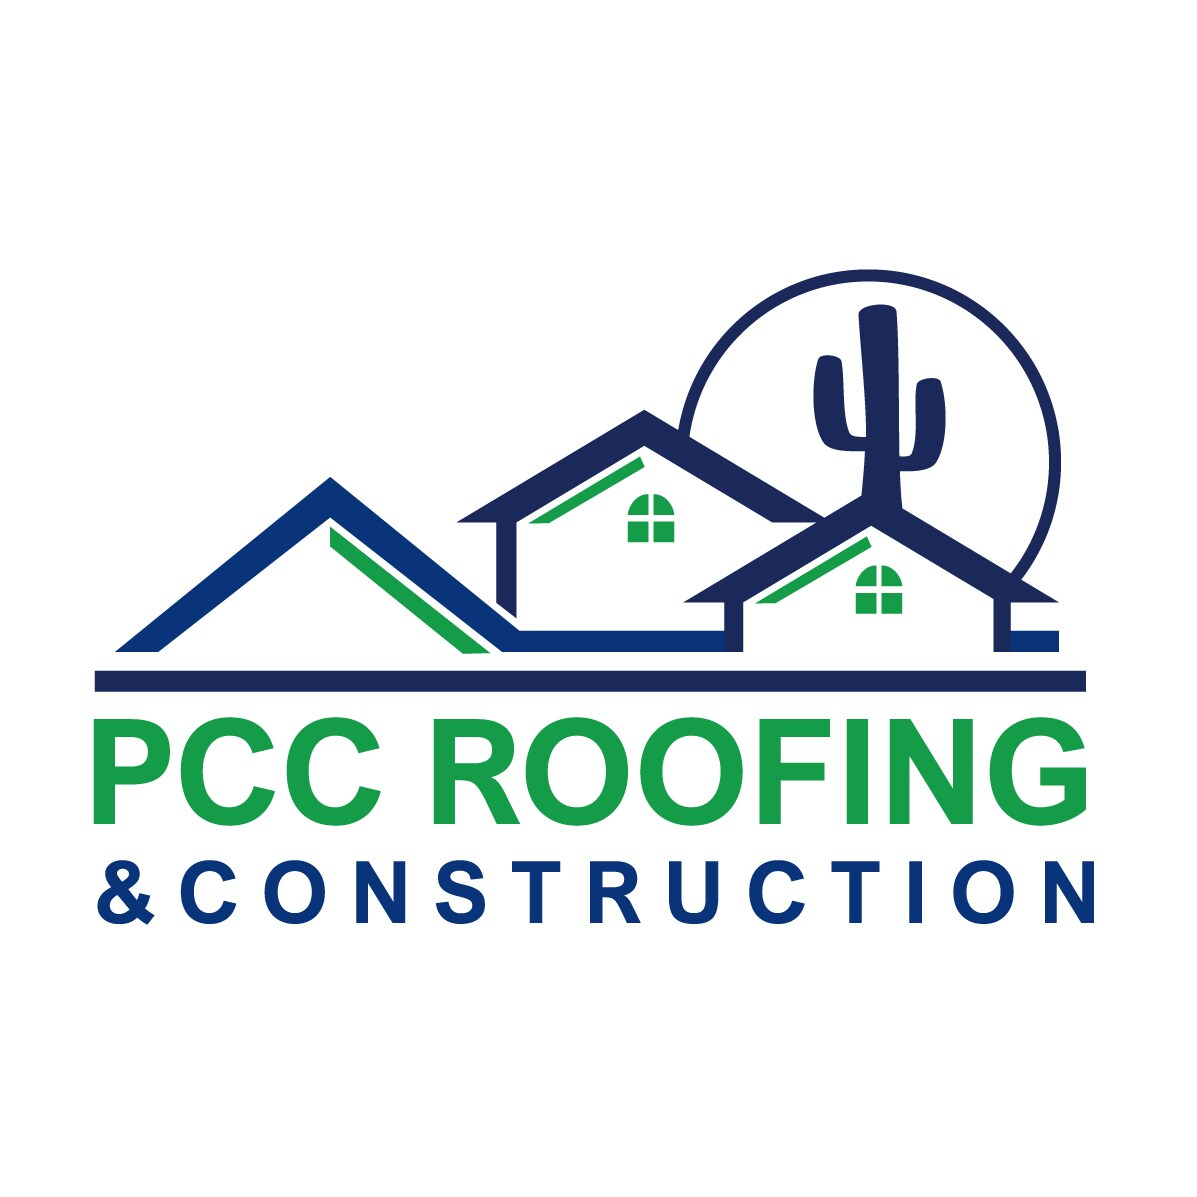 PCC Roofing & Construction, LLC